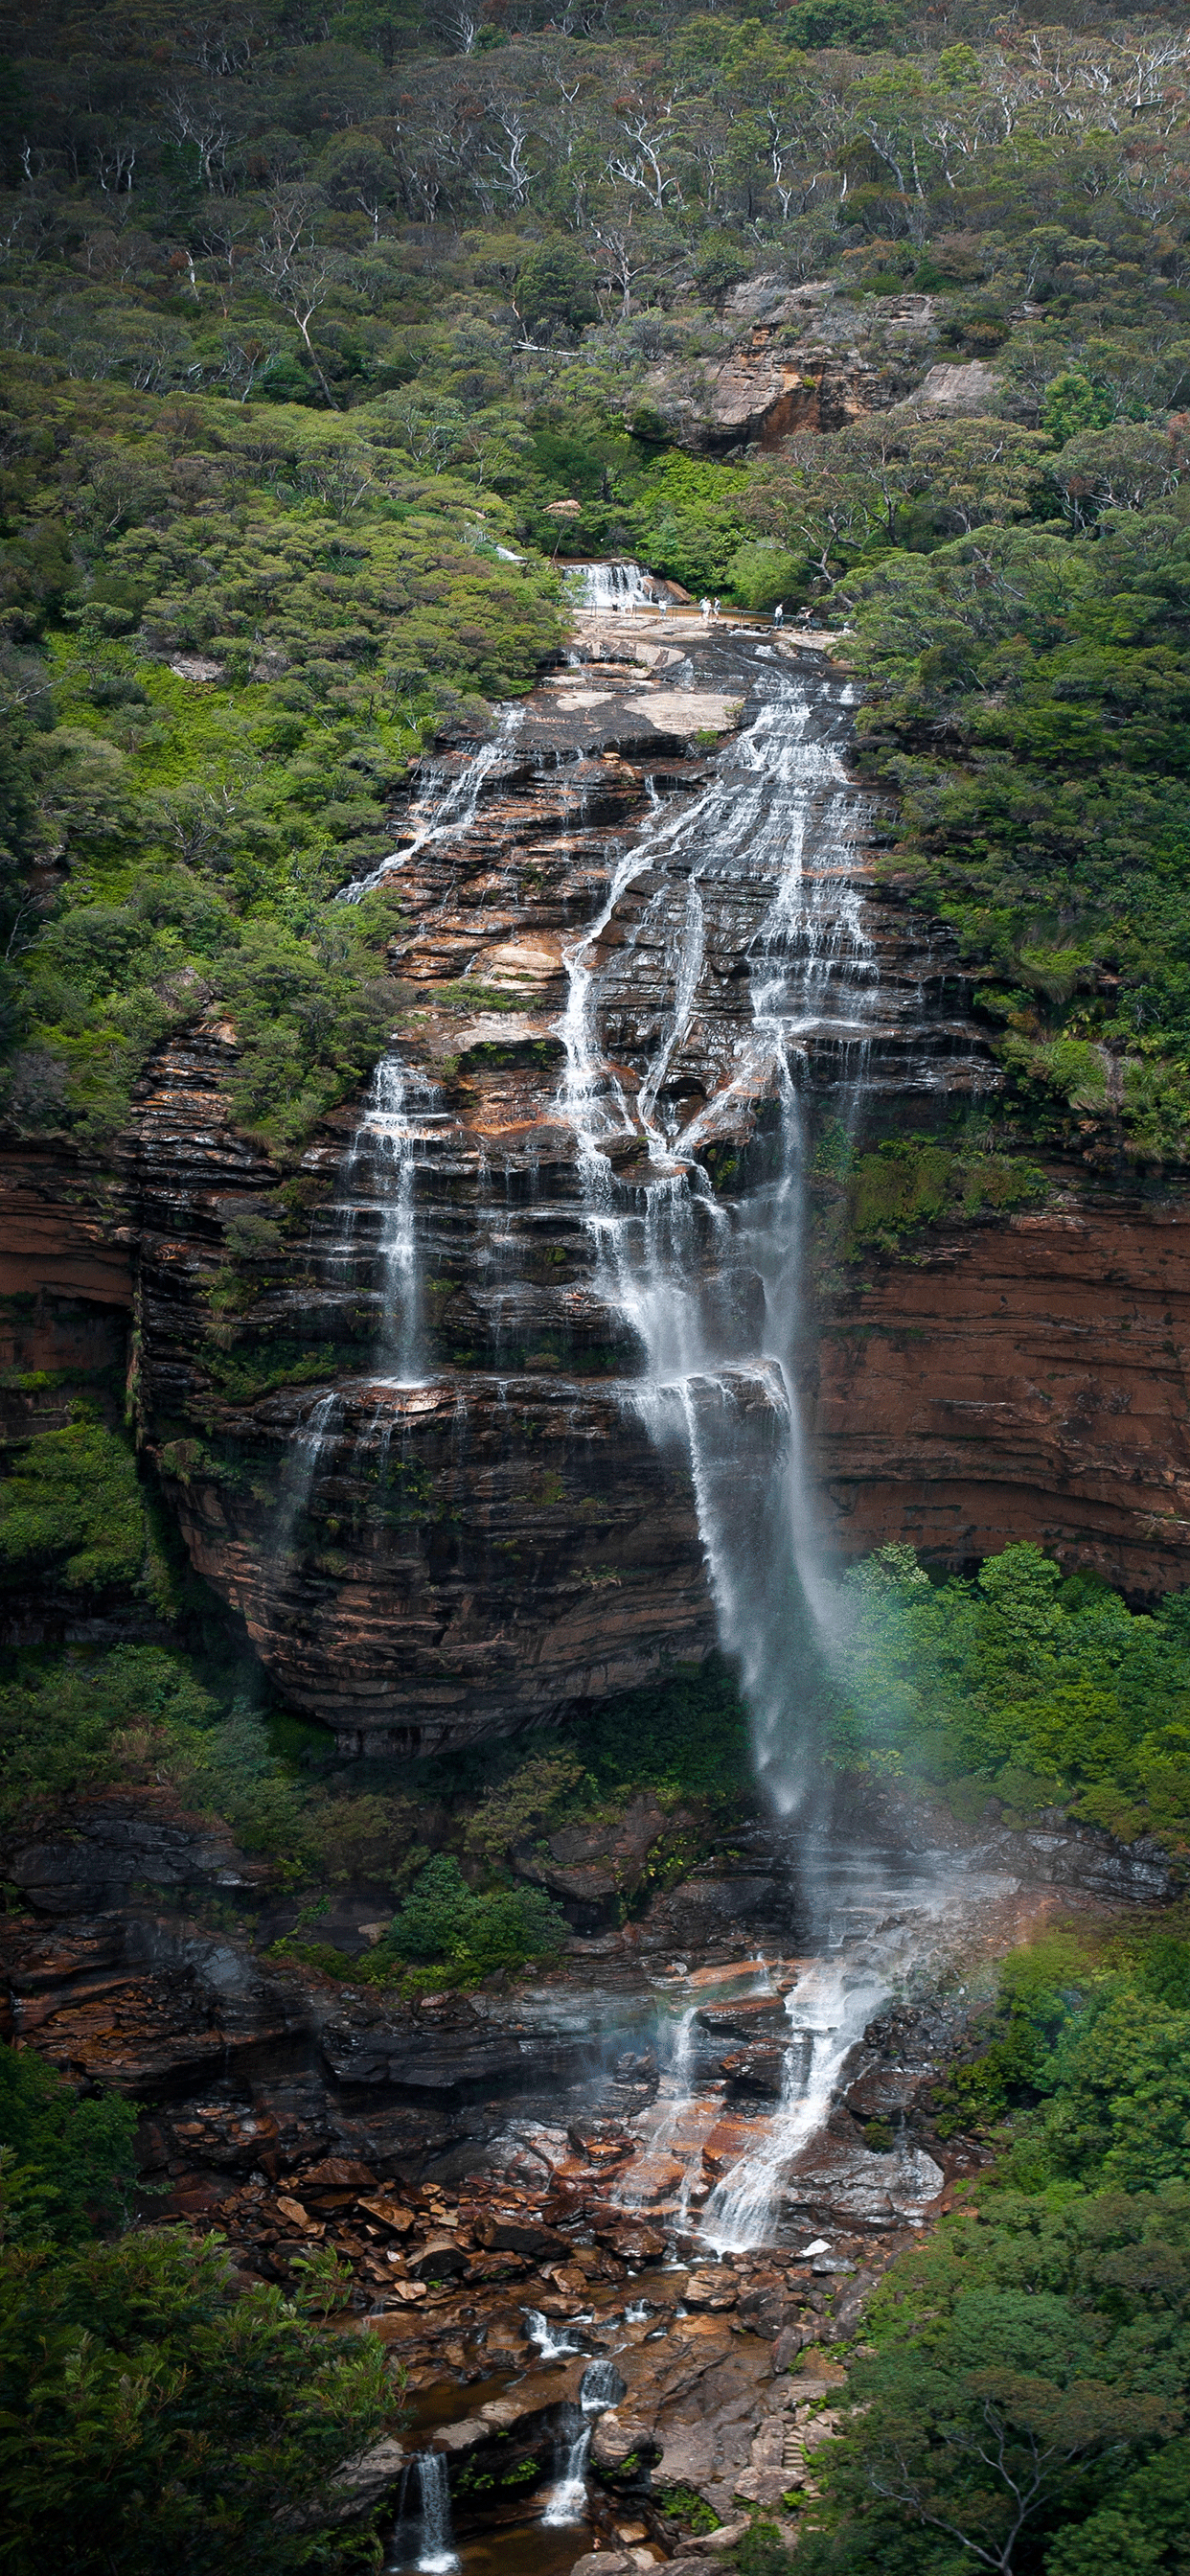 iPhone wallpaper australia wentworth falls Australia